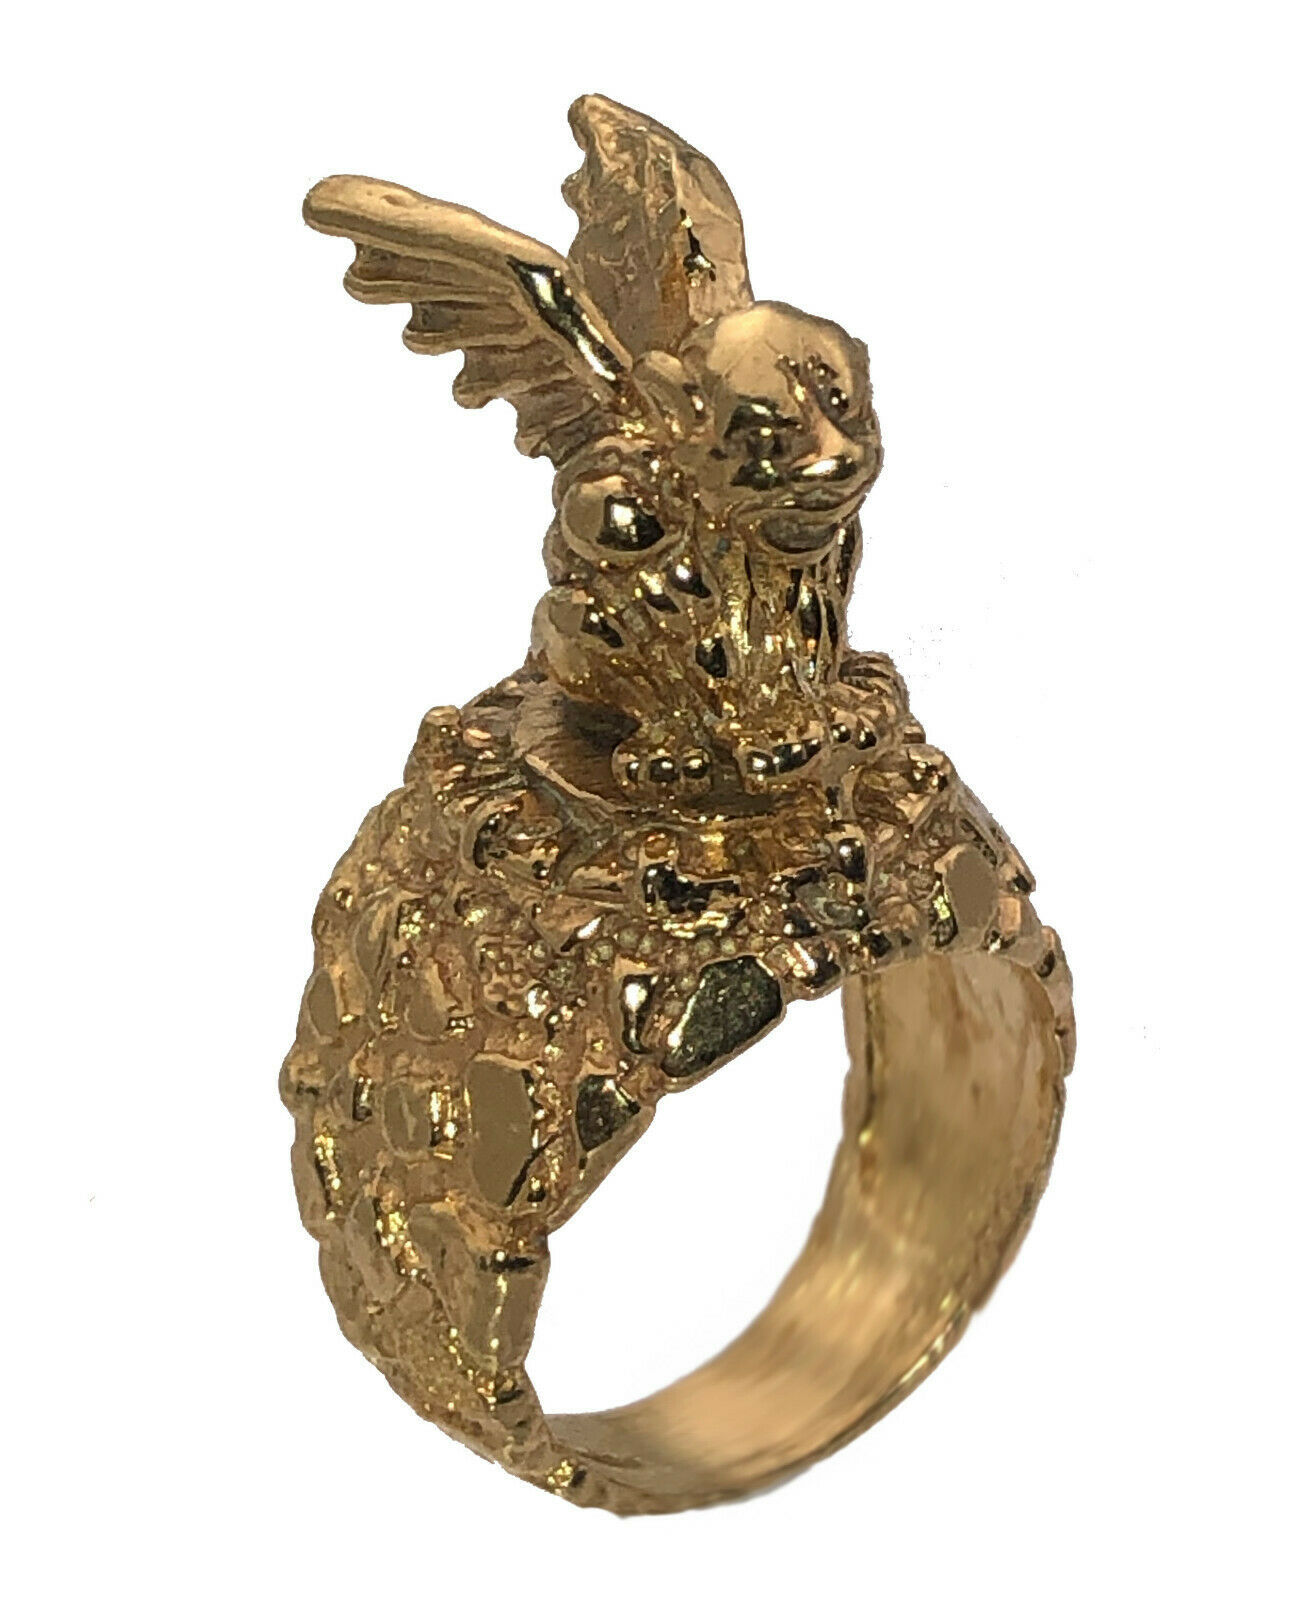 Gargoyle Ring 24K Gold Plated protect against evil force spirits Jinn Jewelry